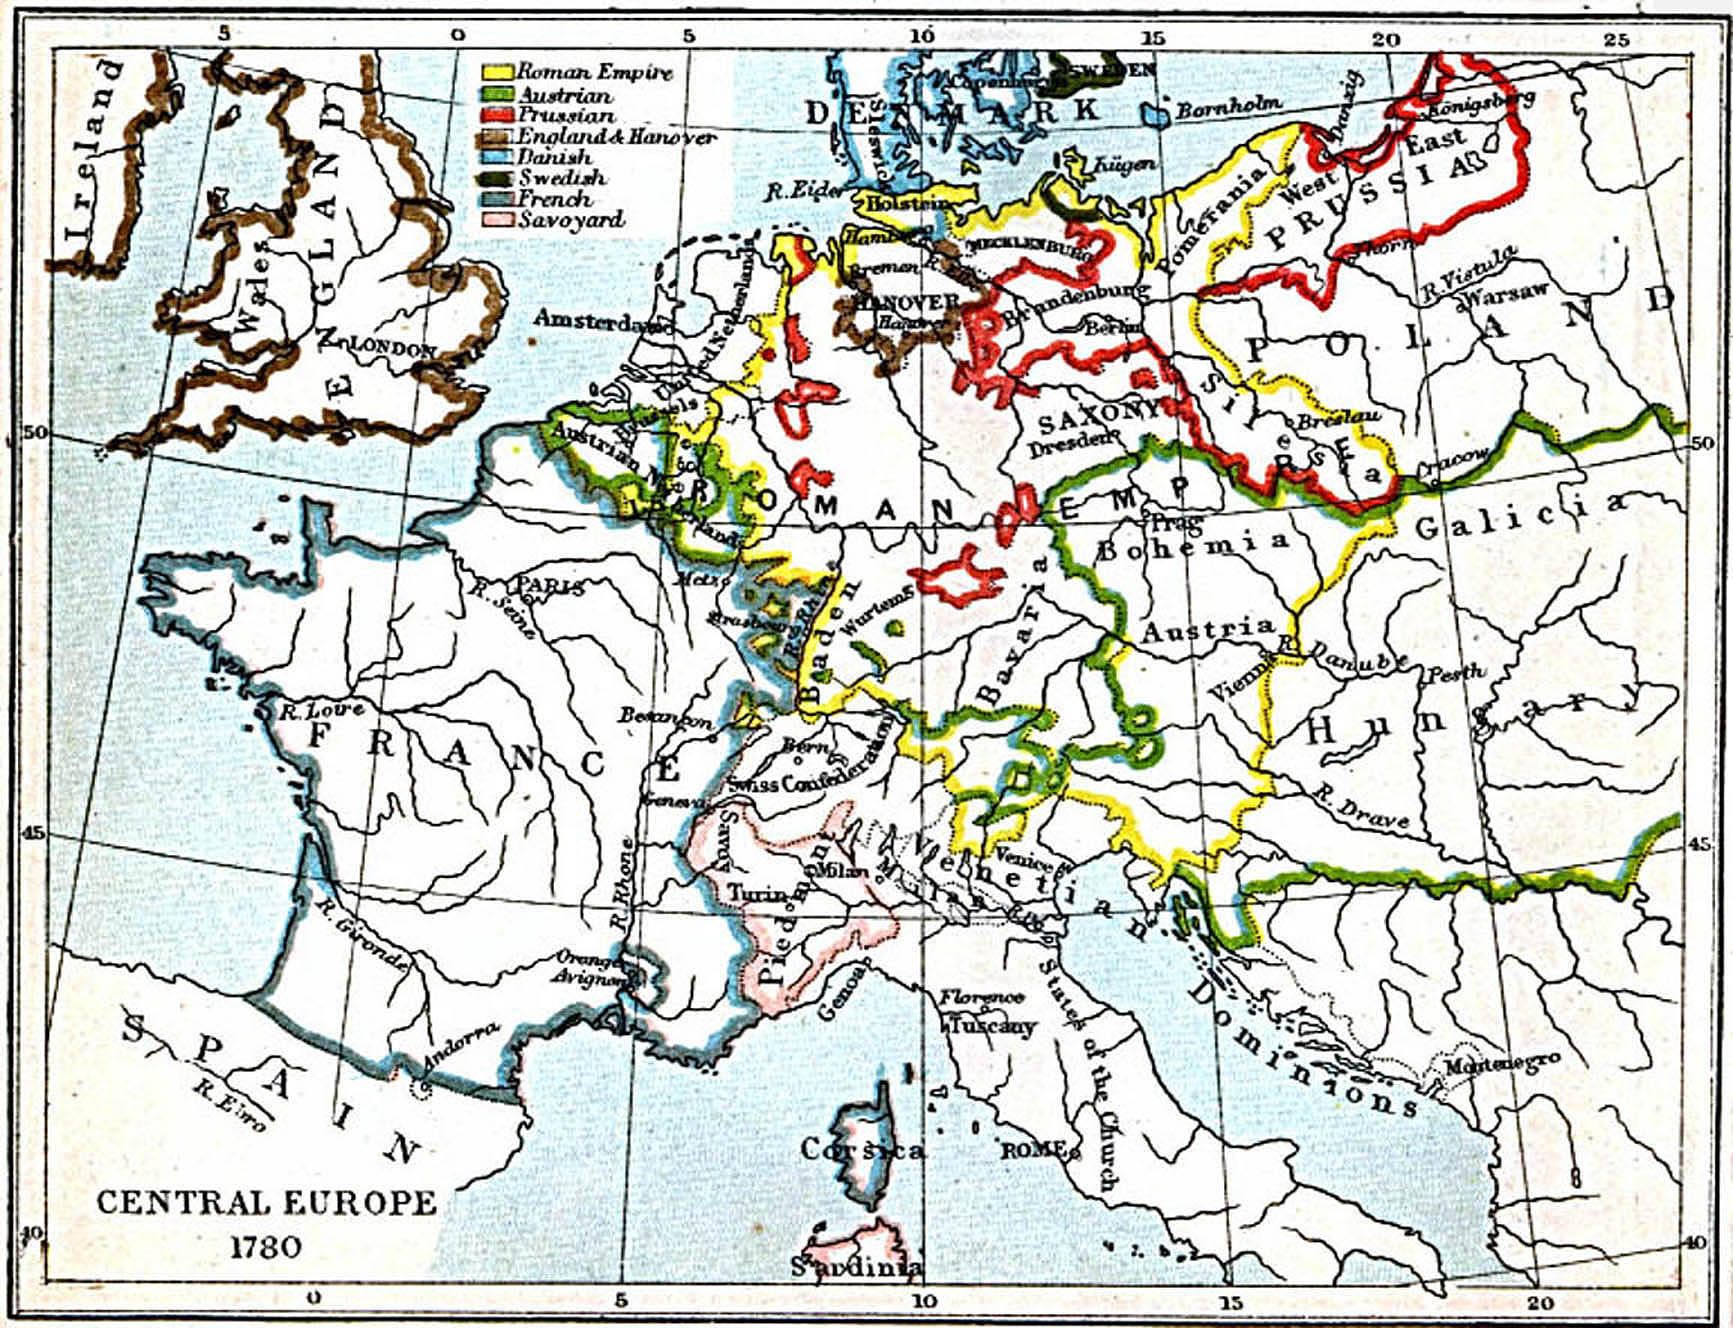 Map Of Europe 1780.Central Europe 1780 A D Cosmolearning History